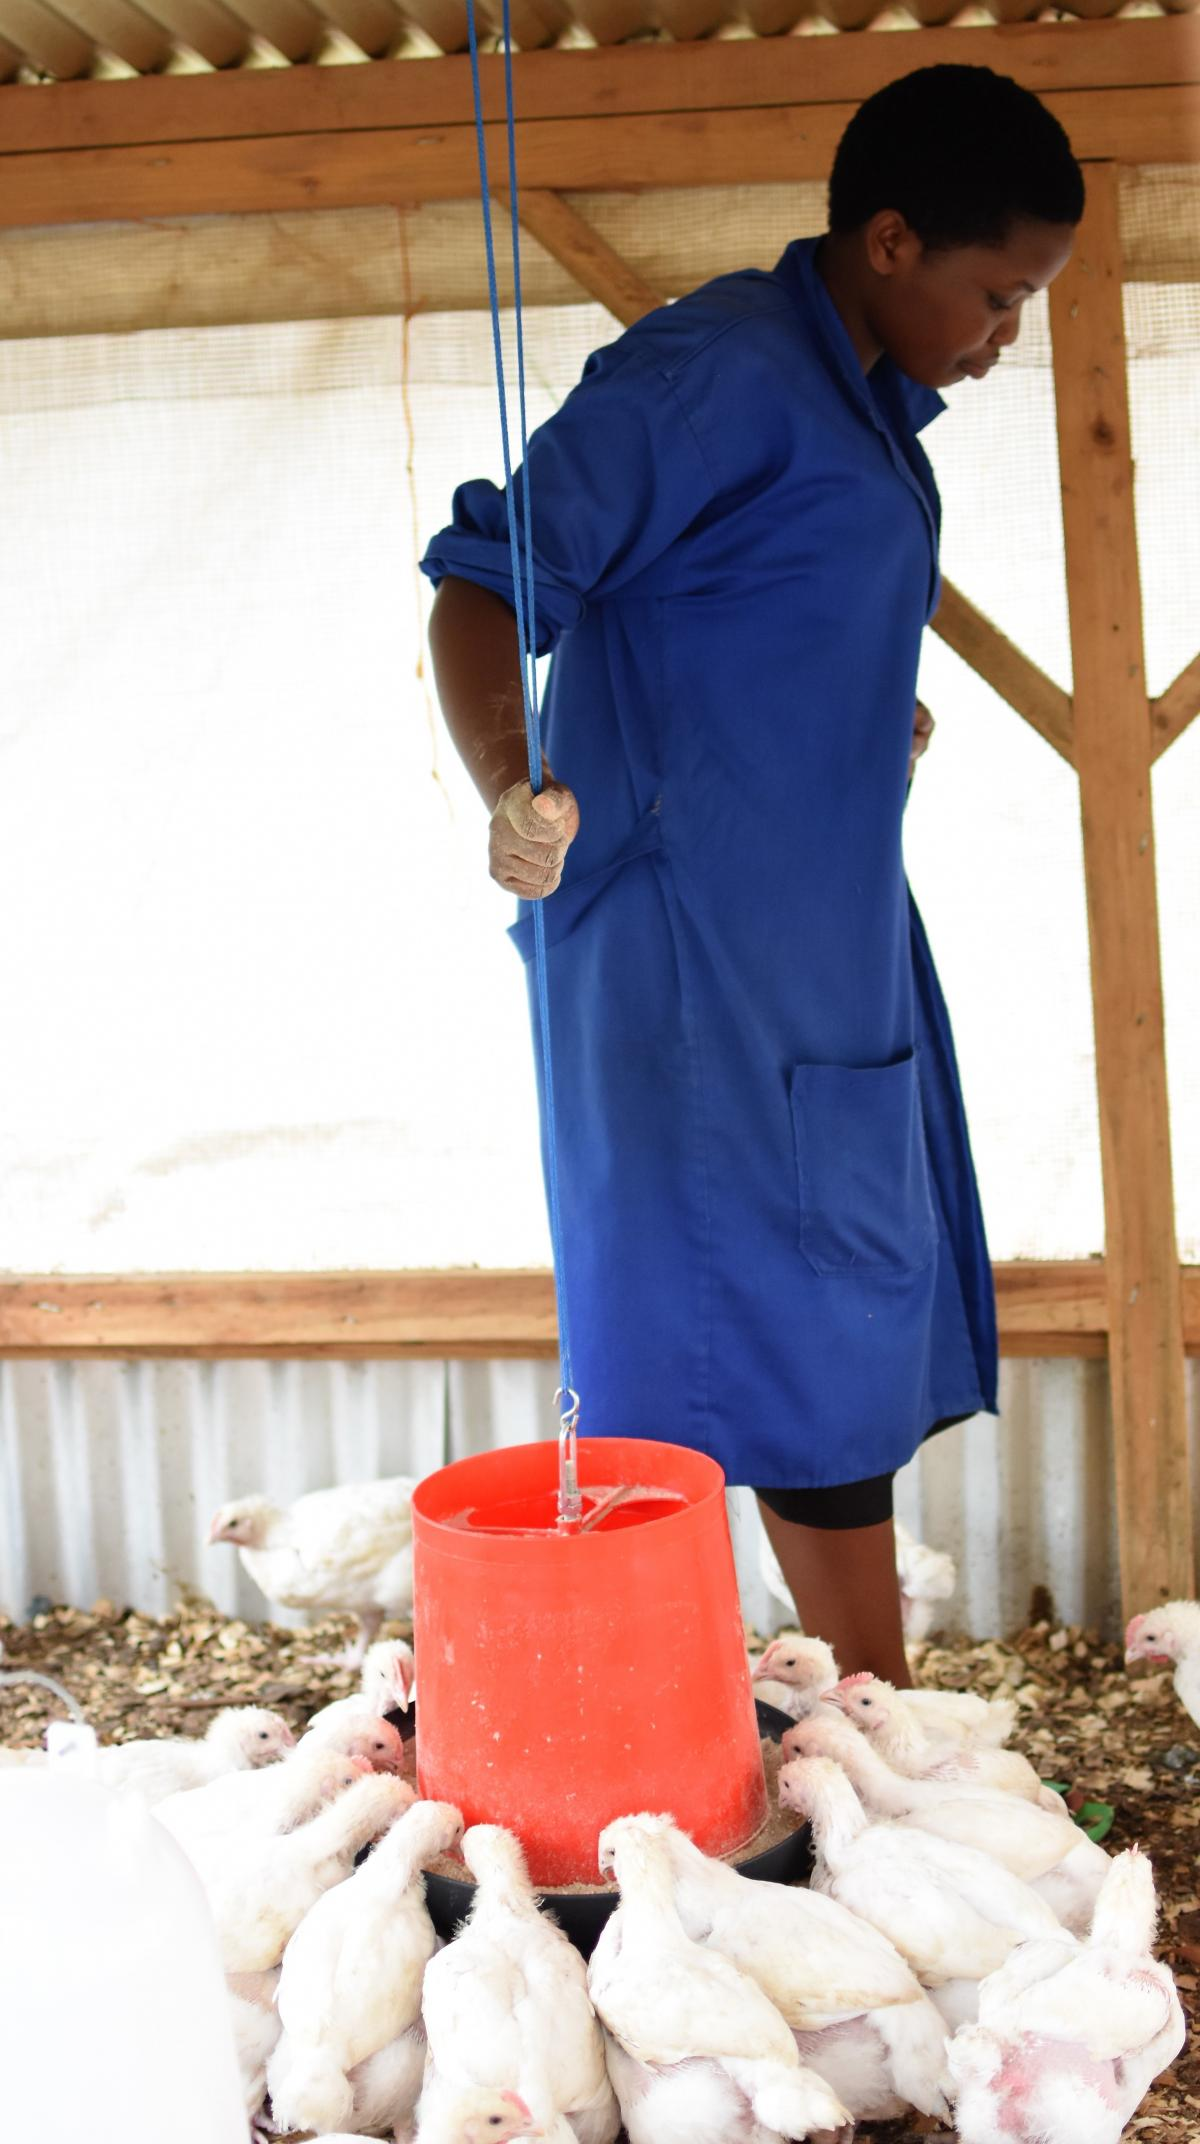 A former Tysons CEO started a program in Rwanda teaching farmers how to raise chickens, but it faces several challenges, including the fact that the country has no infrastructure to support it.